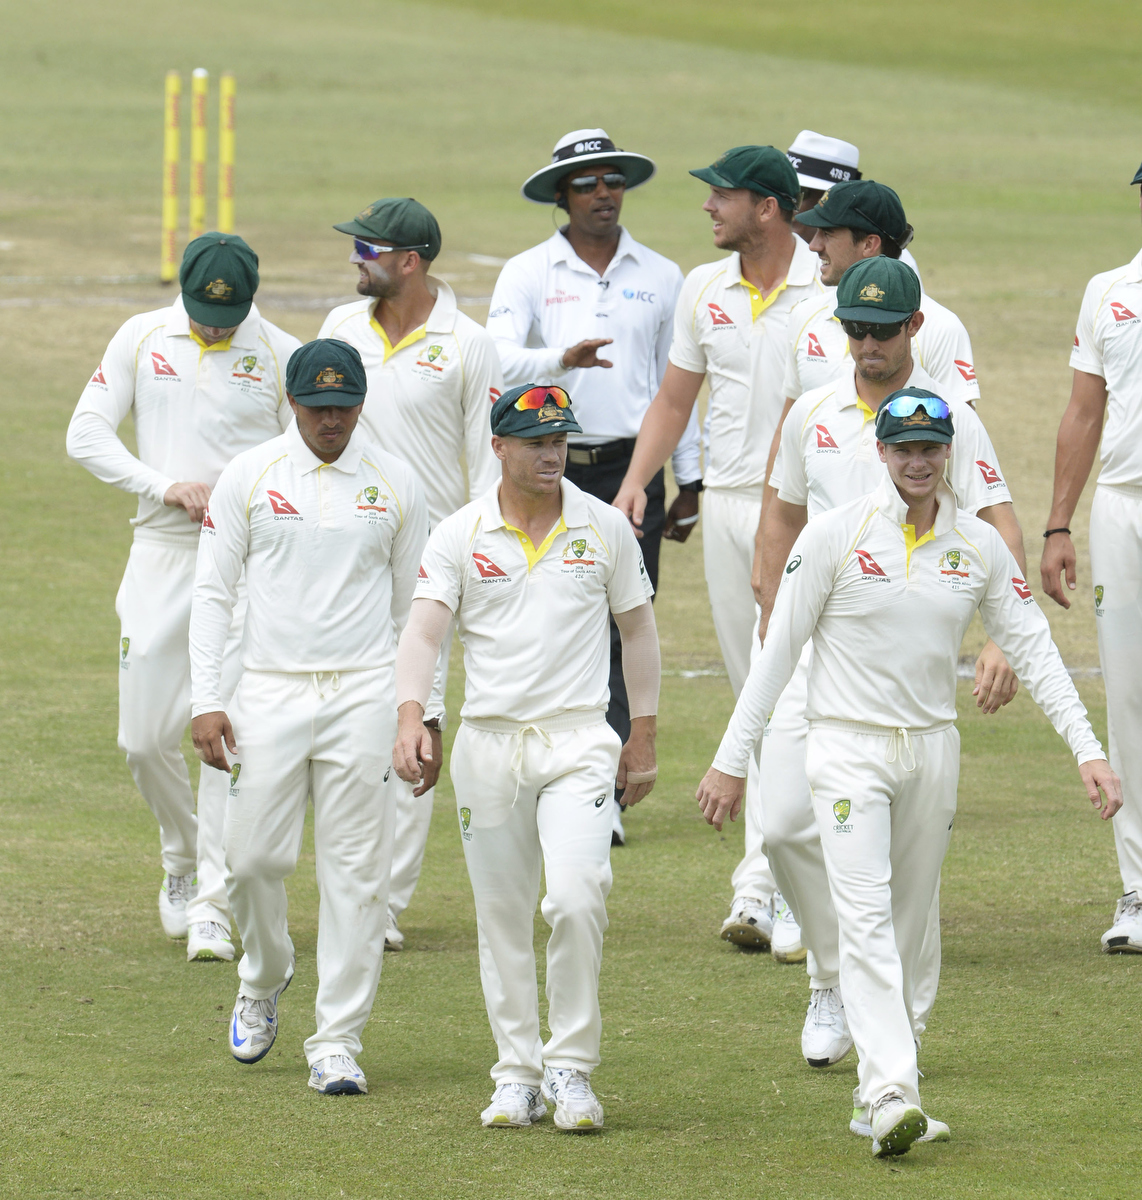 The Australian team. Pic: Lee Warren/Gallo Images/Getty Images